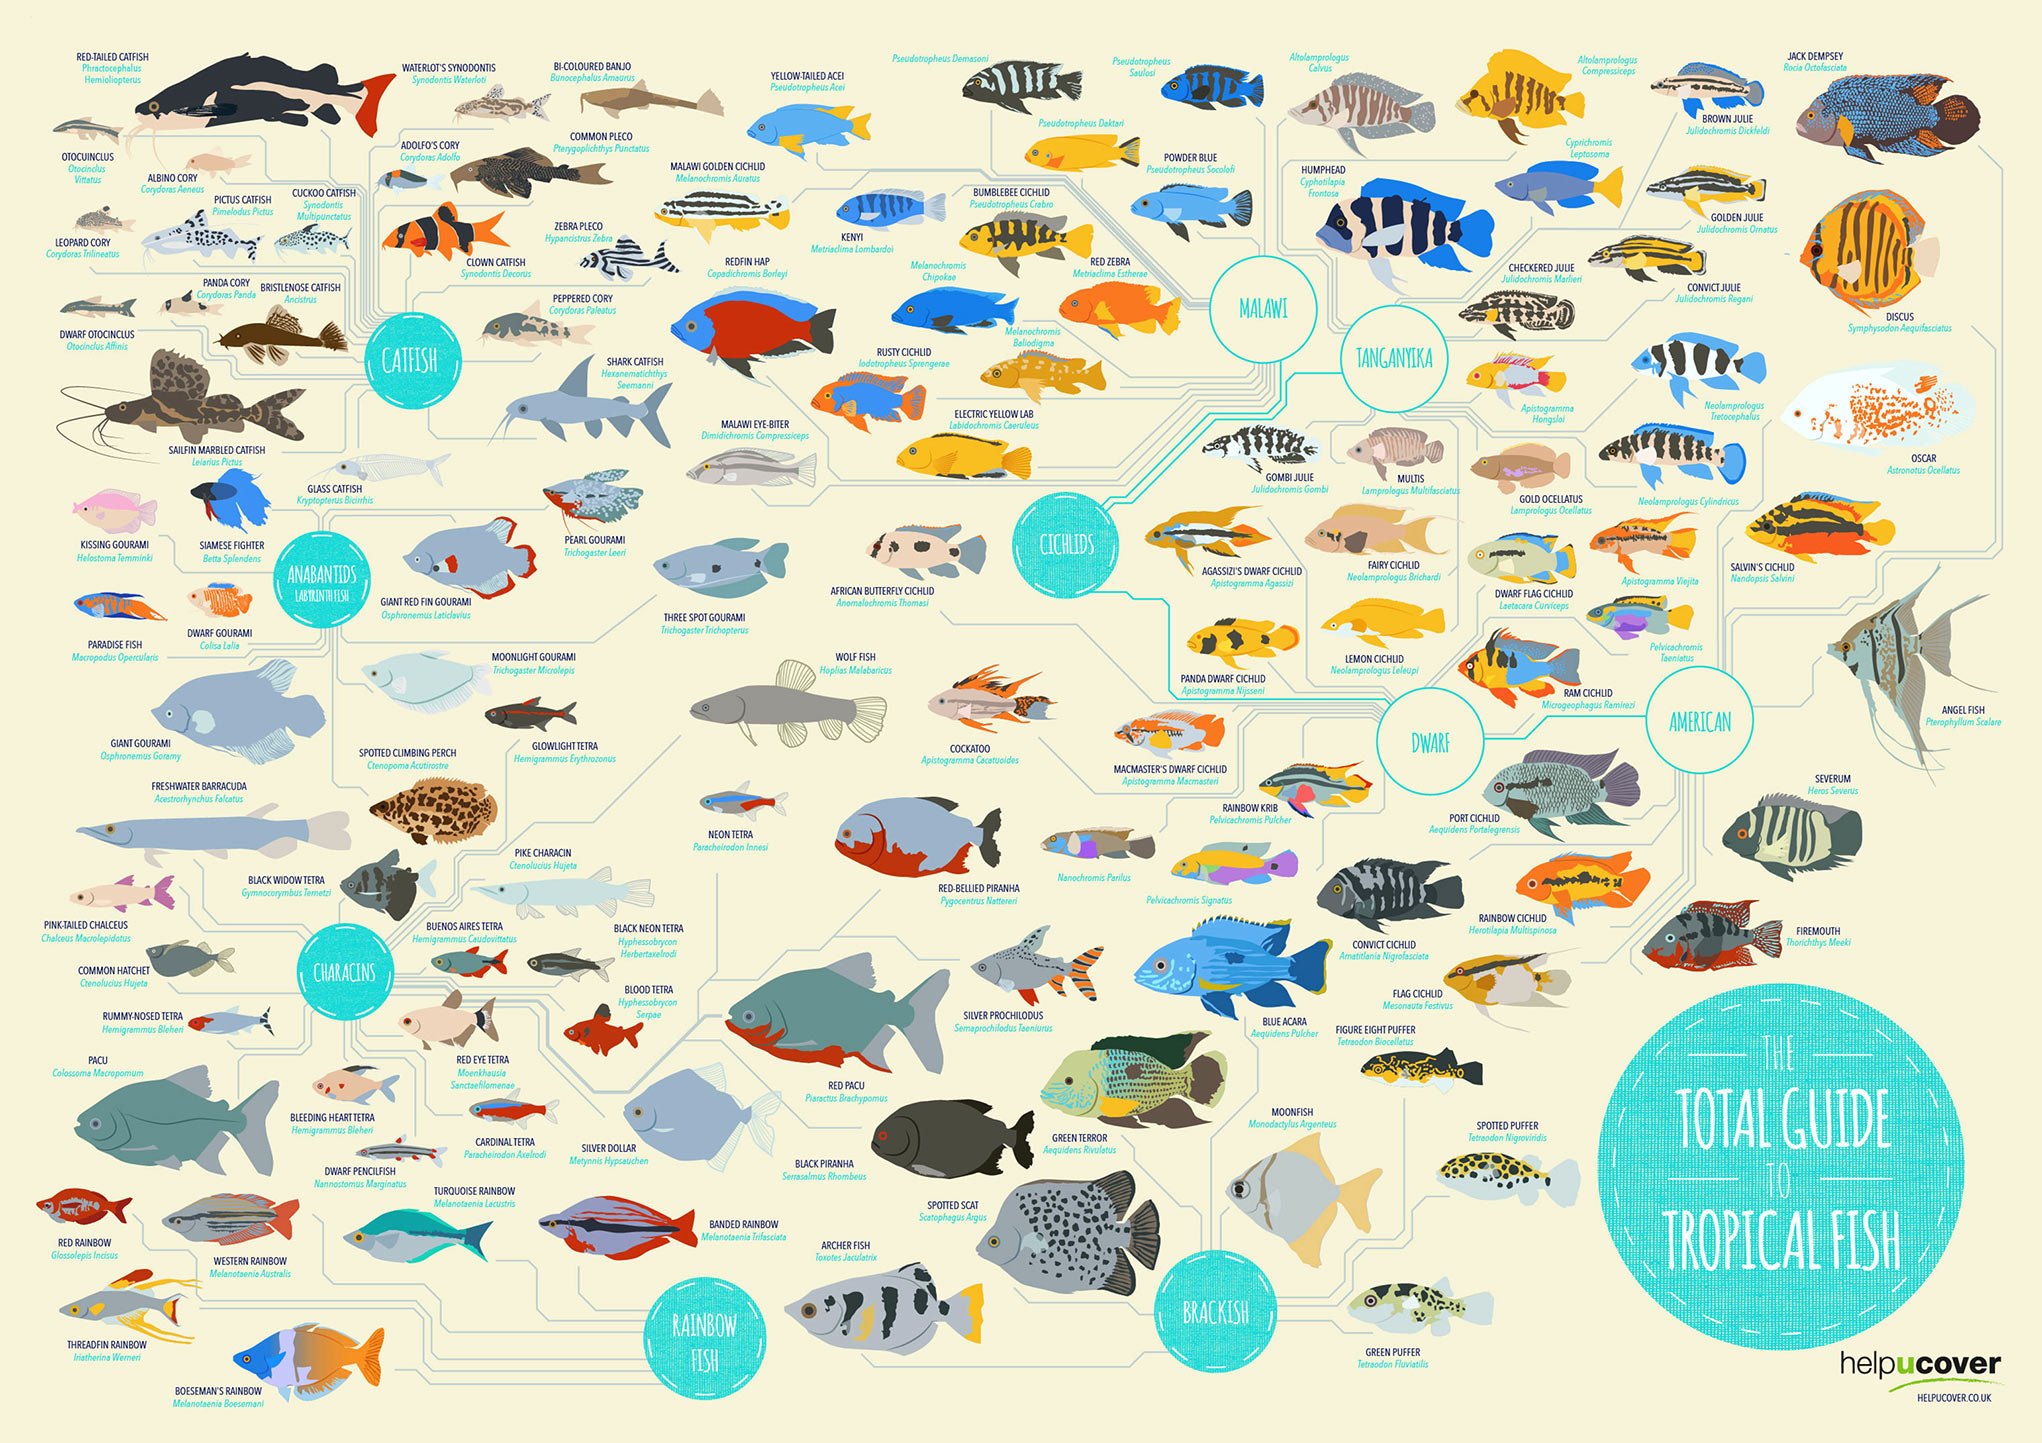 tropical fish list of species infographic